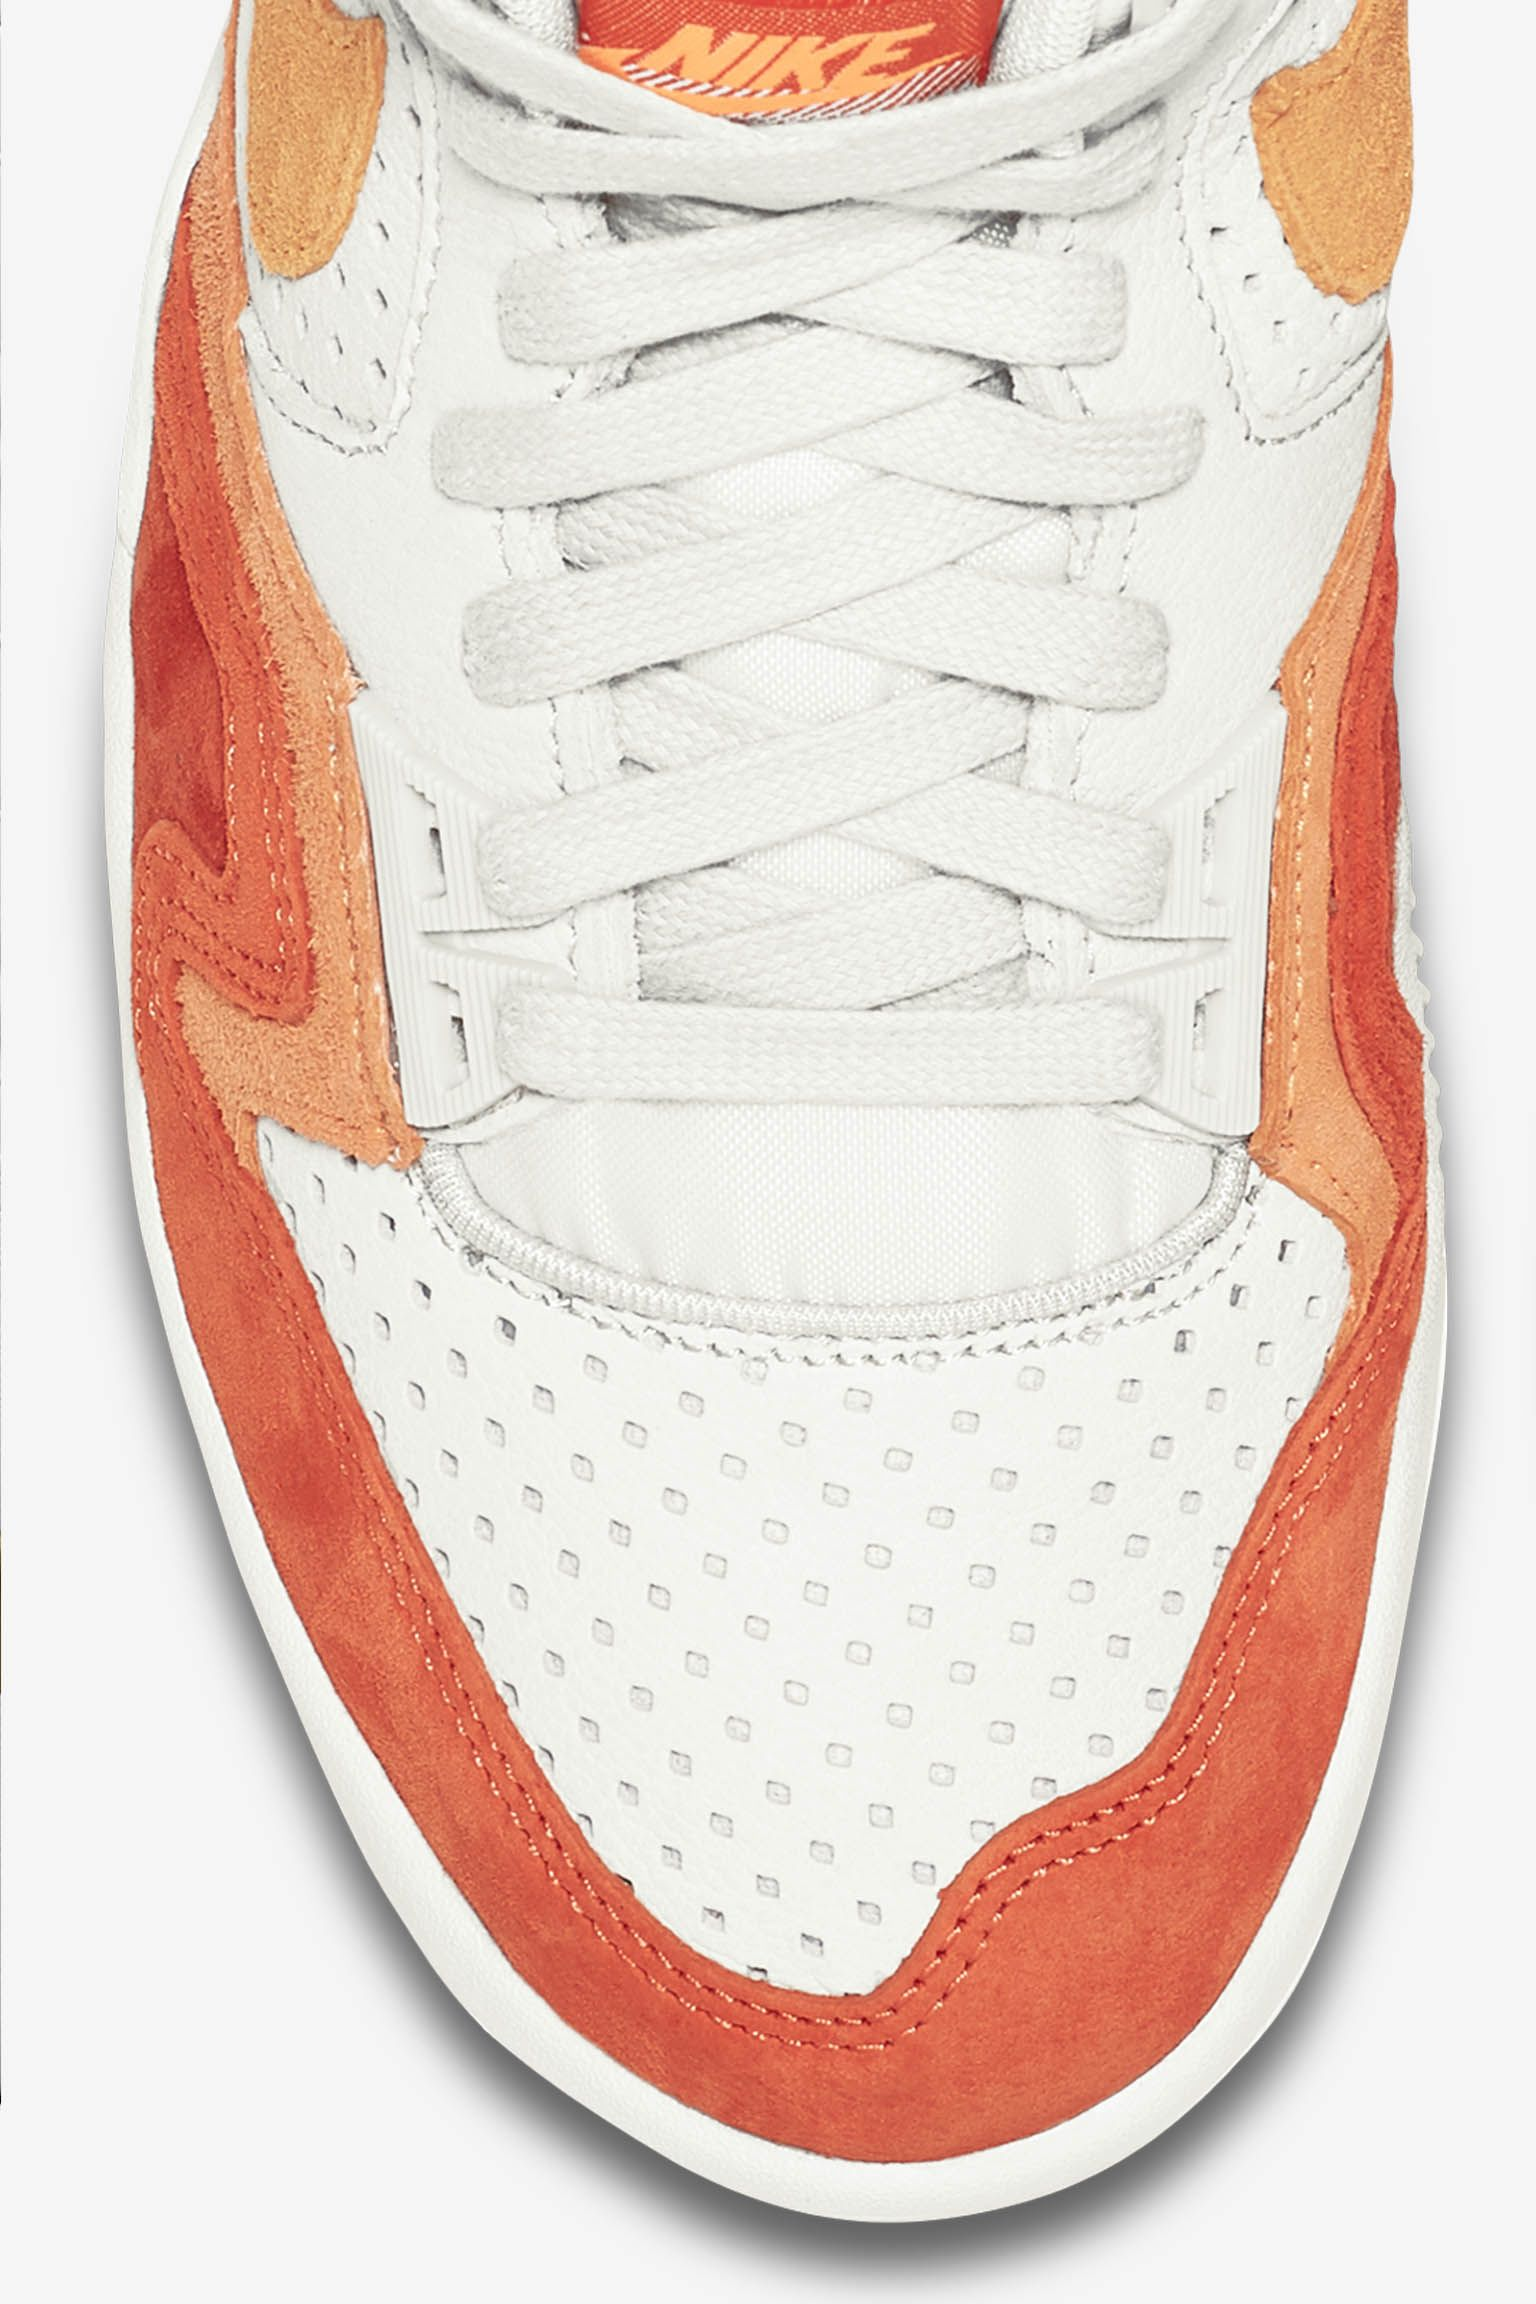 NikeCourt Air Tech Challenge 2 'Laser Orange'